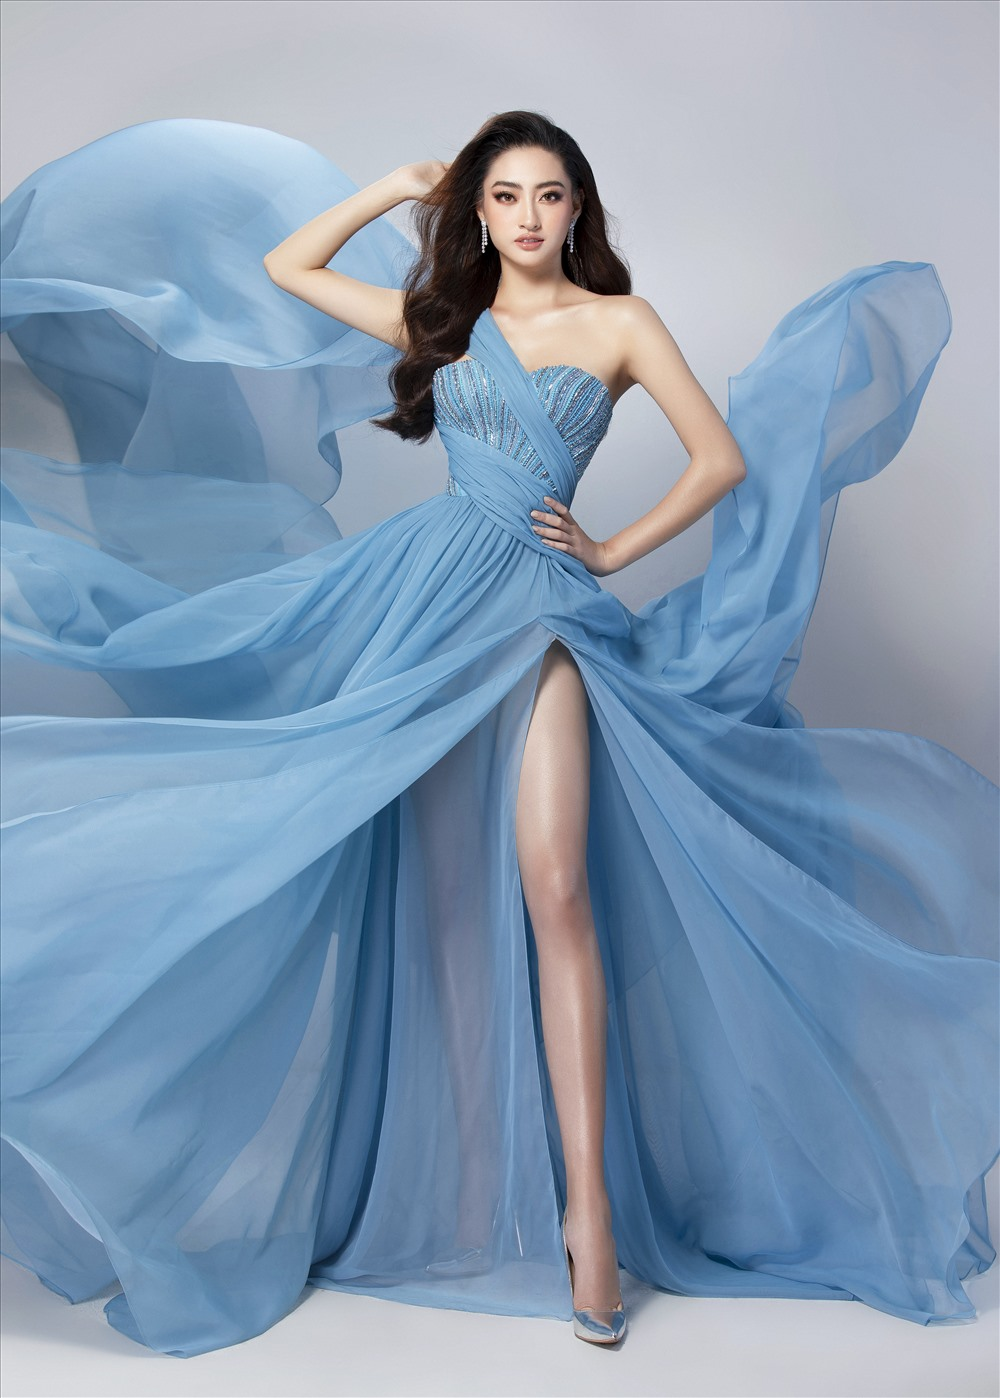 miss world 2019: luong thuy linh duoc du doan top 10 chung cuoc hinh anh 1